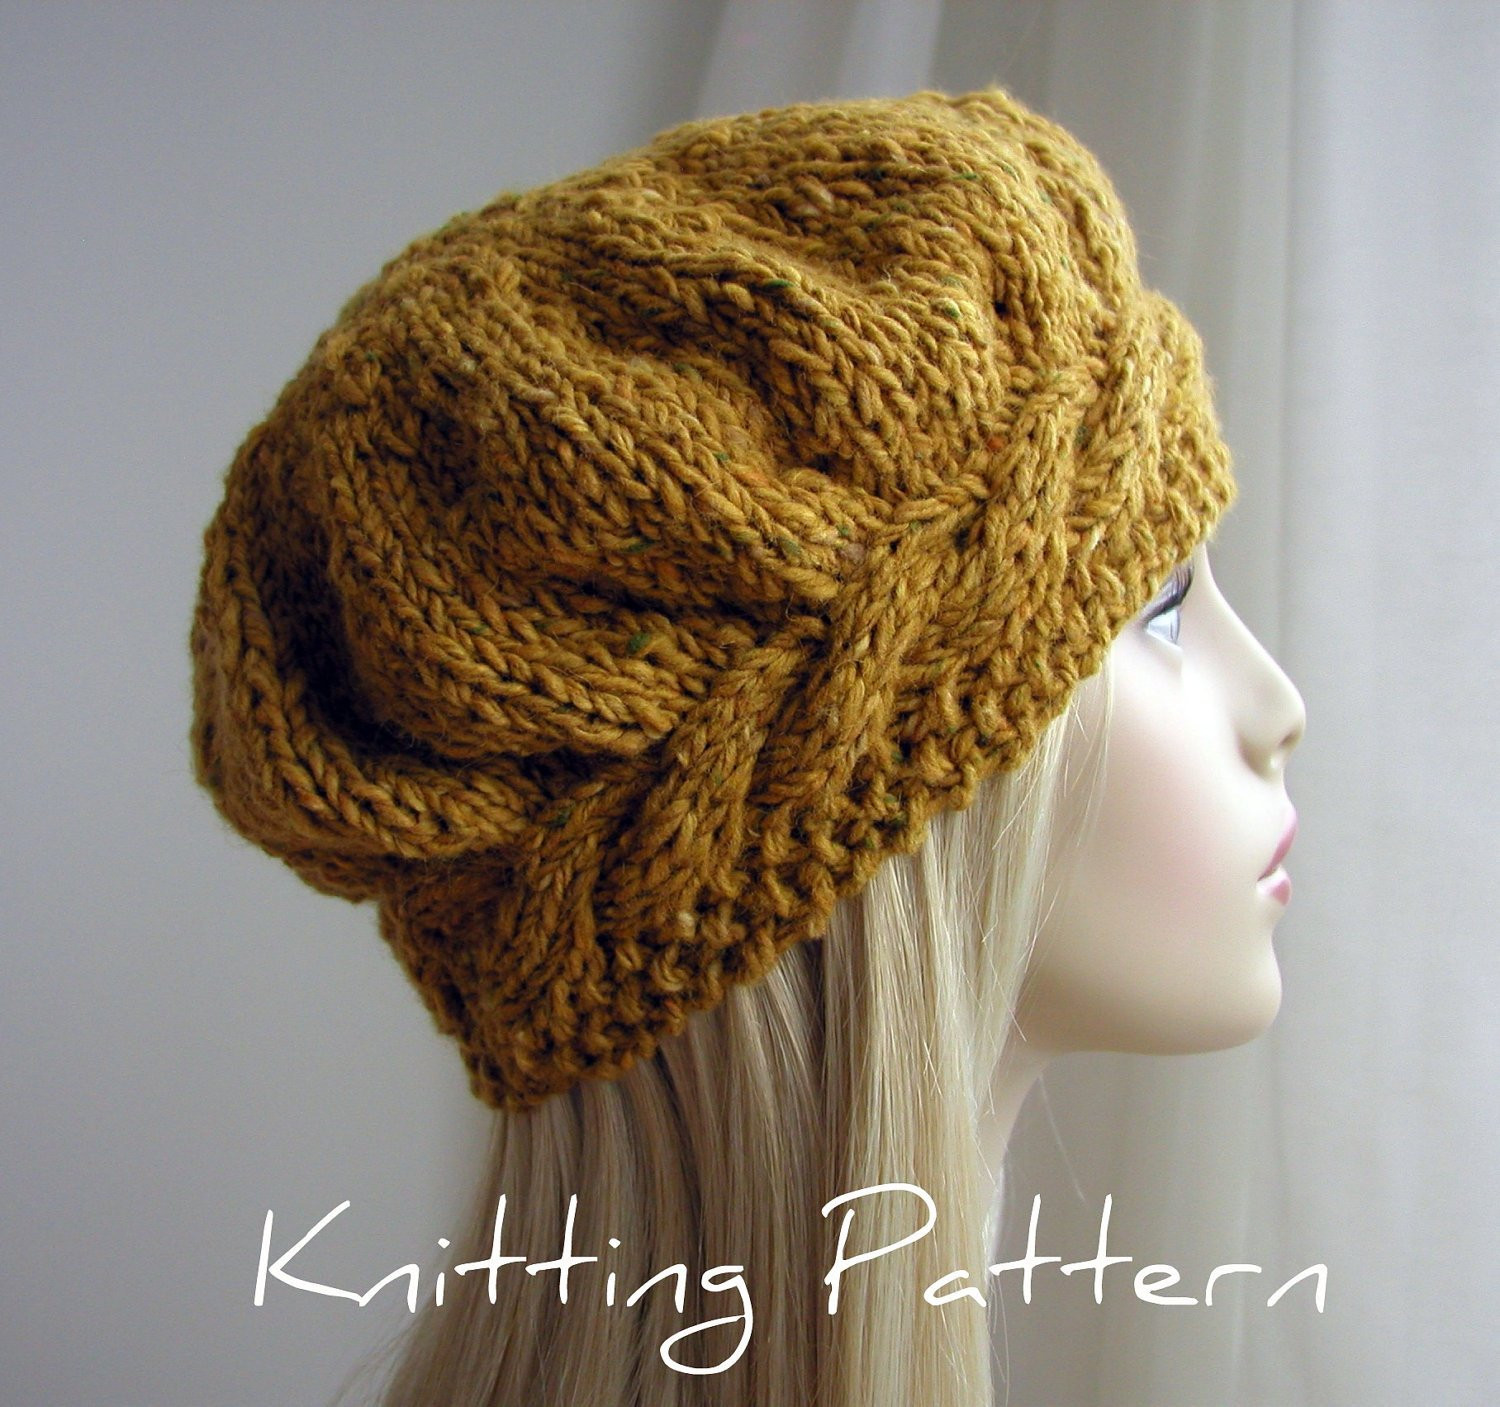 Knit Hat Patterns Awesome Free Knitting Beret Patterns Design Patterns Of Gorgeous 49 Pictures Knit Hat Patterns